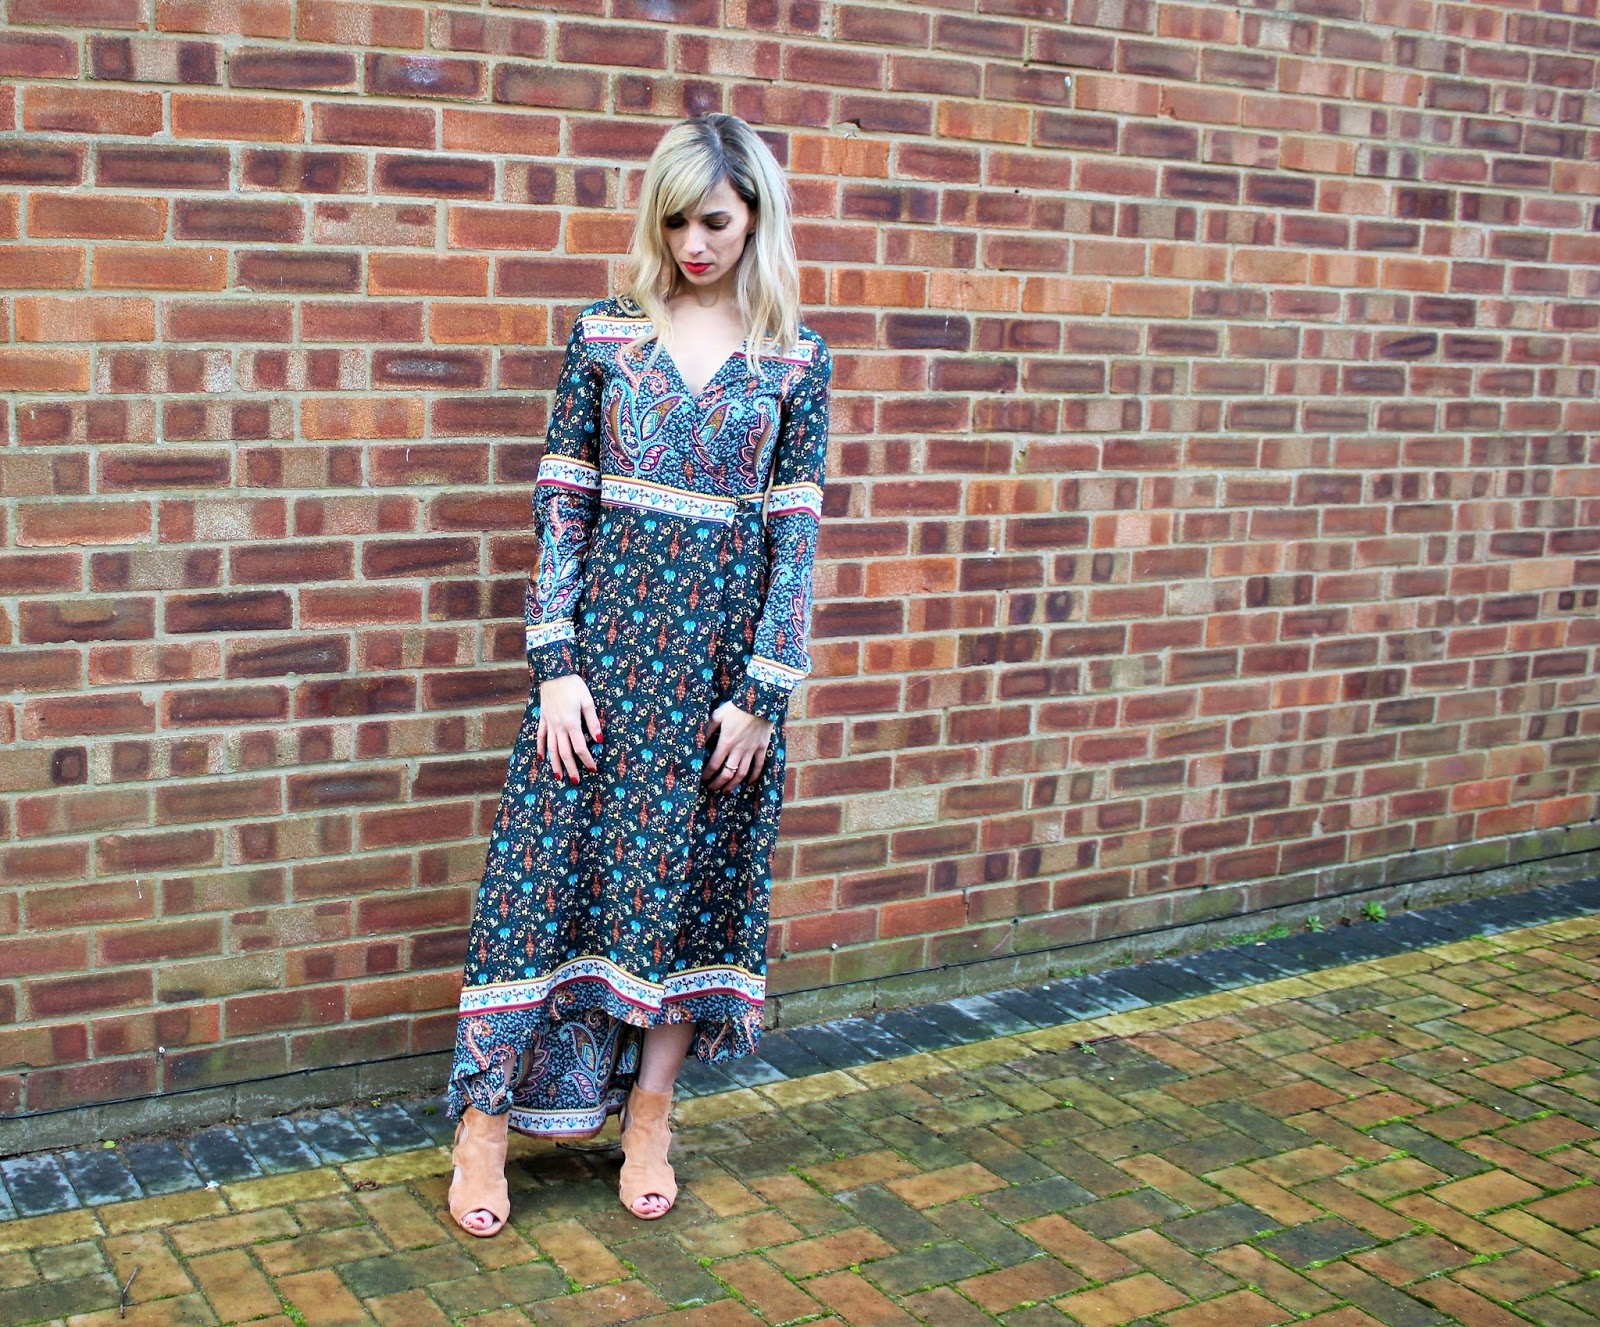 OOTD featuring a Shein wraparound maxi dress - 4